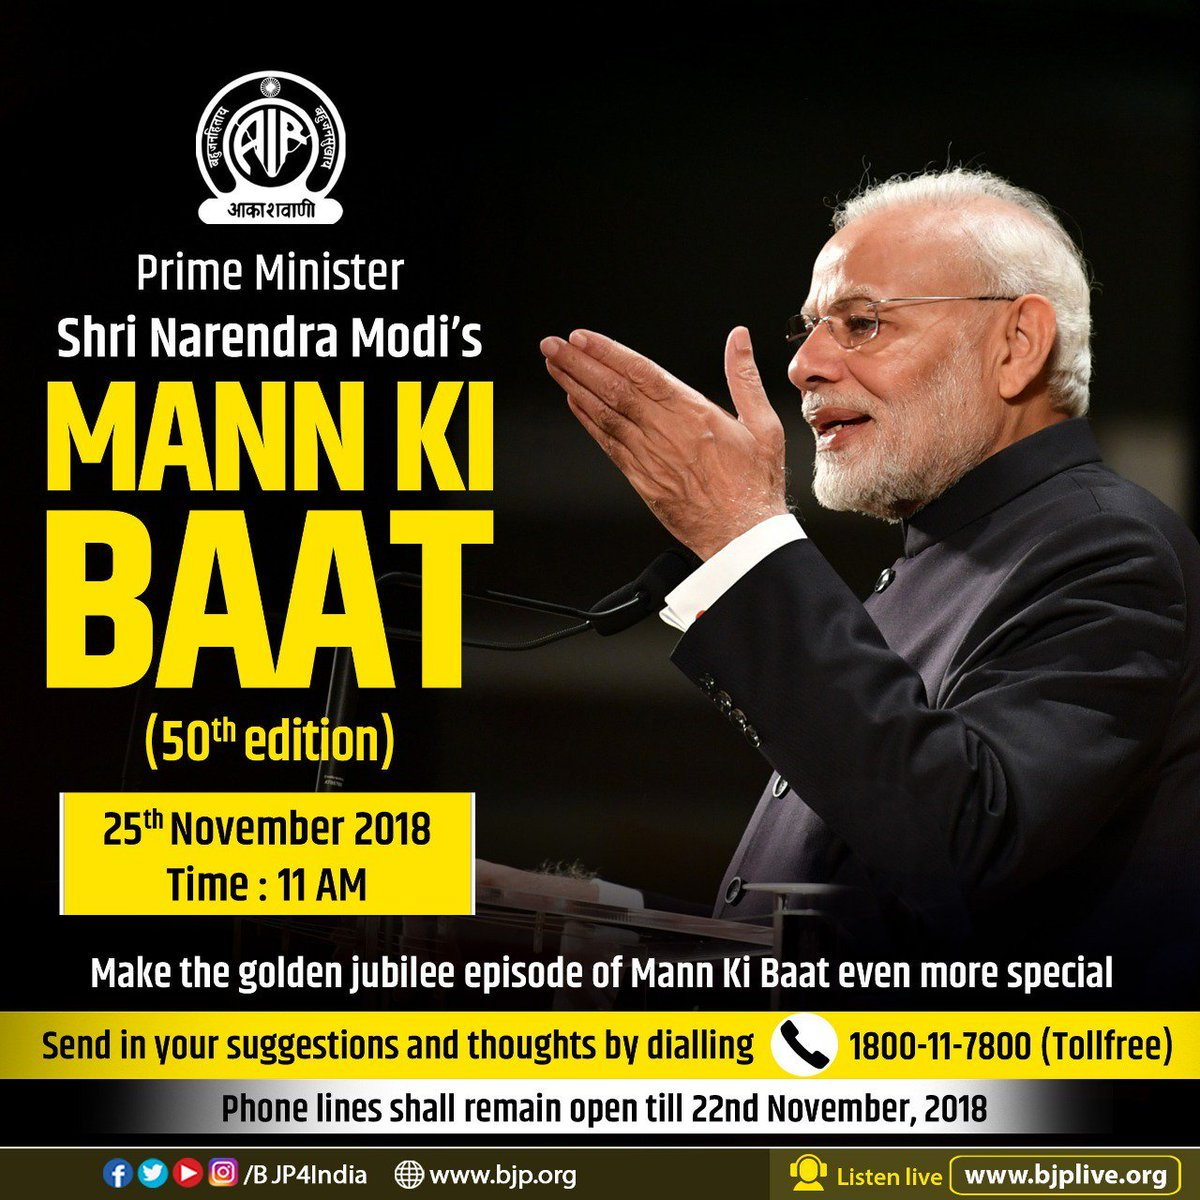 Dial 1800117800 to share your ideas and suggestions for 50th edition of PM Shri @narendramodi's #MannKiBaat on 25 November 2018. You can also share your inputs at https://t.co/f3TQ1Uw0gw